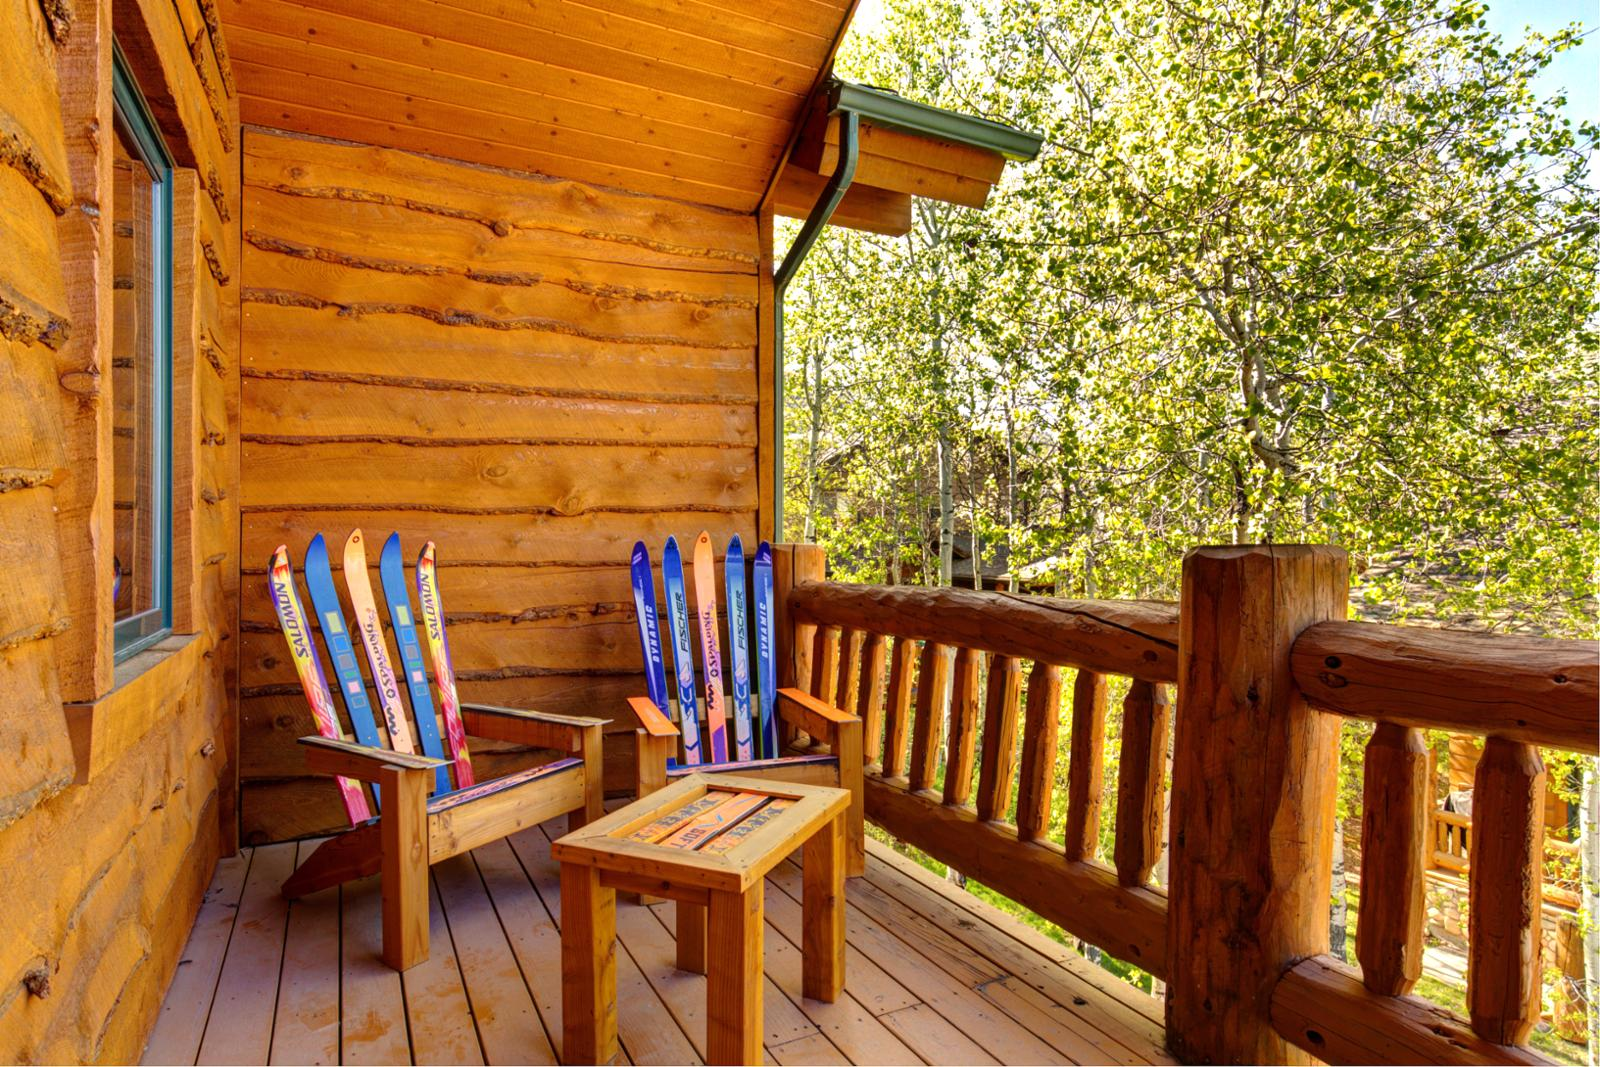 Take in the mountain air right outside your master bedroom balcony